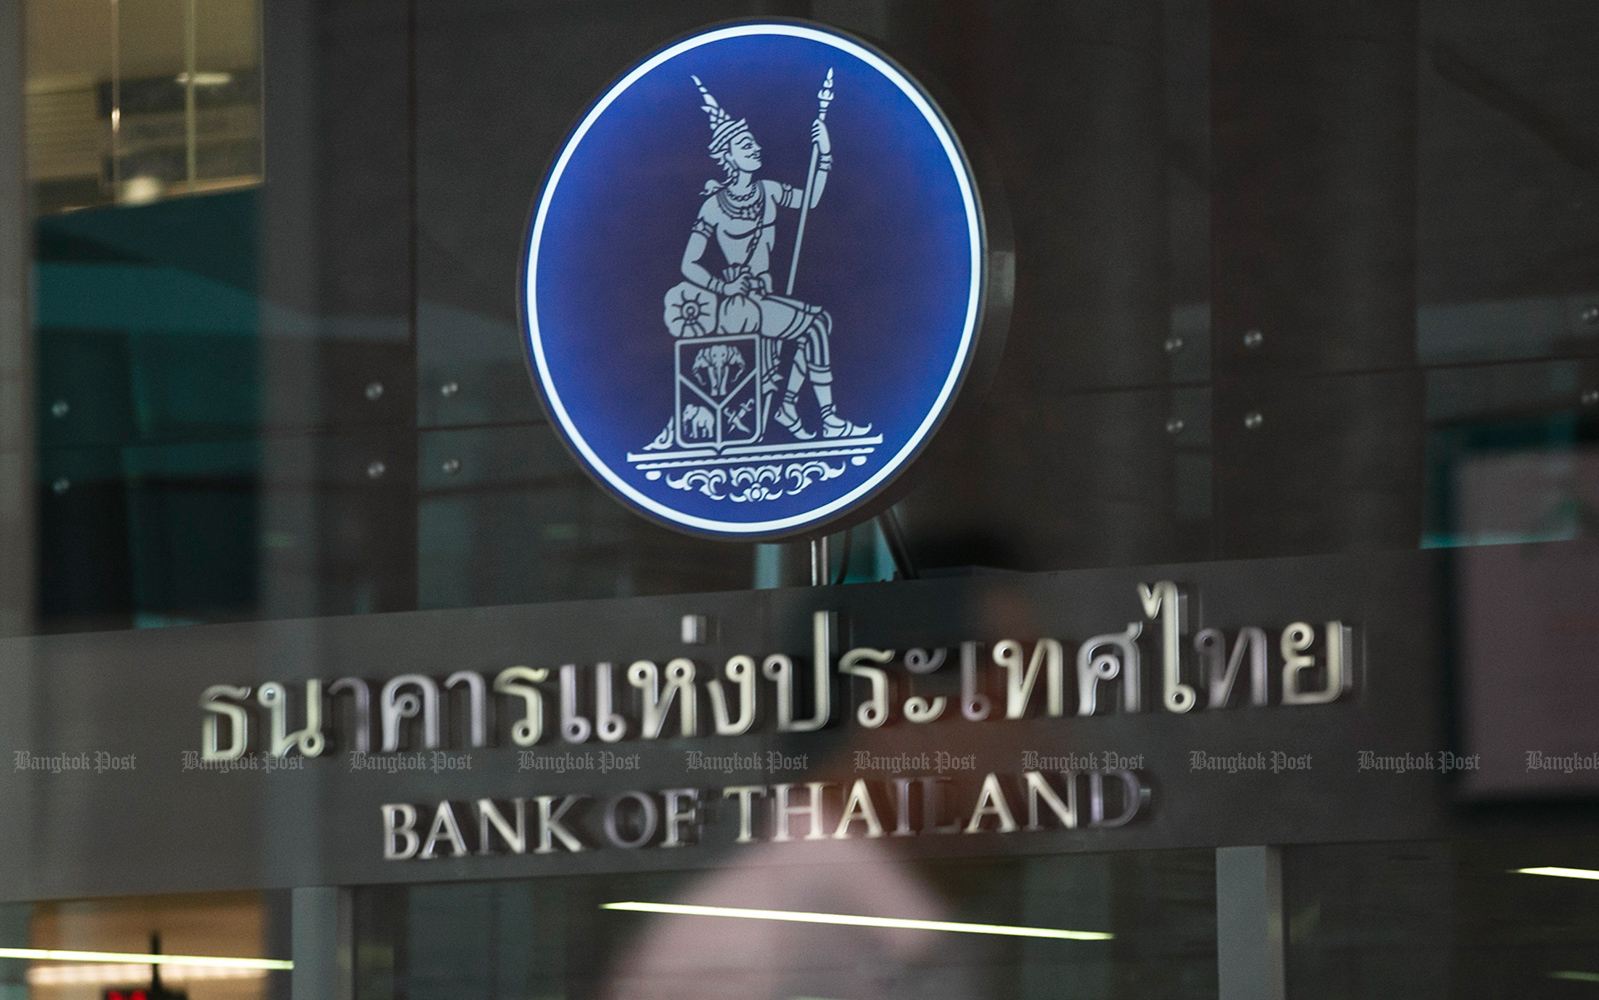 The Bank of Thailand is requiring financial institutions to adjust prepayment charges for small and medium-sized enterprise and personal loans and late-payment fees for SME, personal and mortgage loans based on actual costs. (Bangkok Post photo)